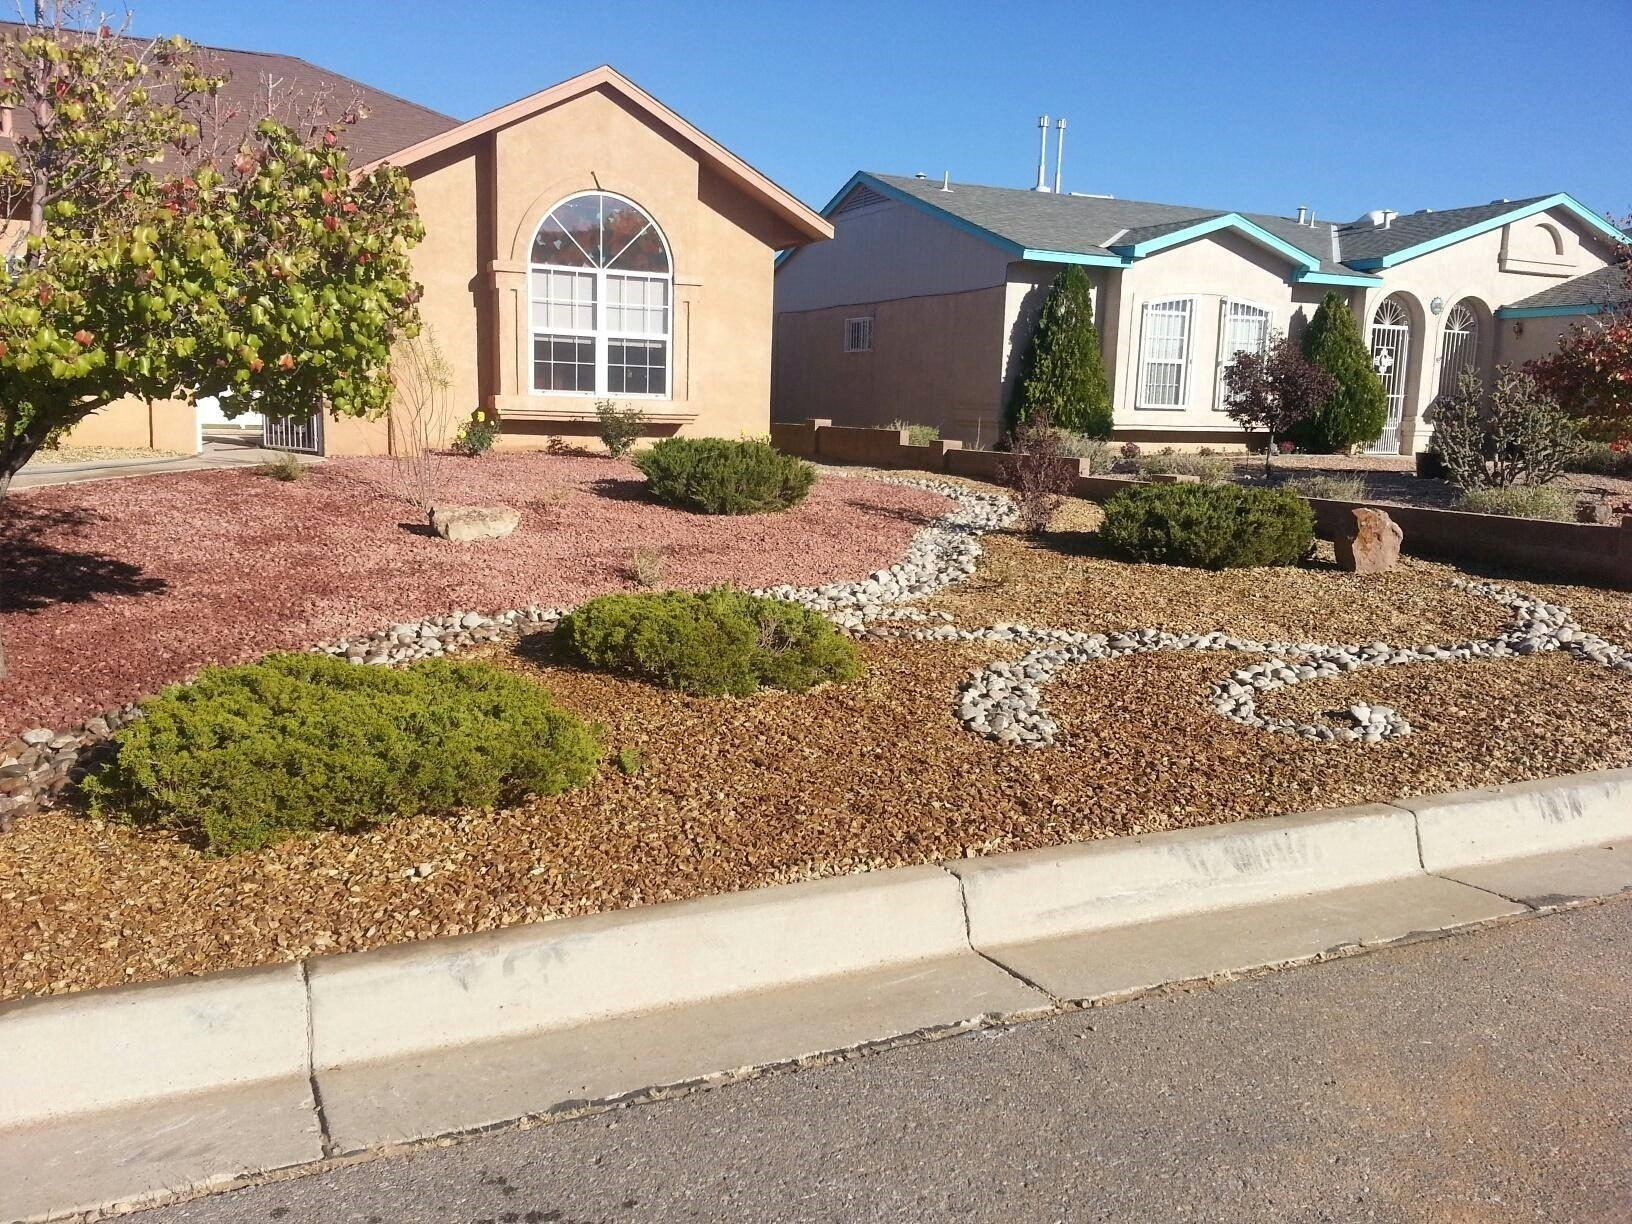 Diaz Landscaping Residential And Commercial Landscaping